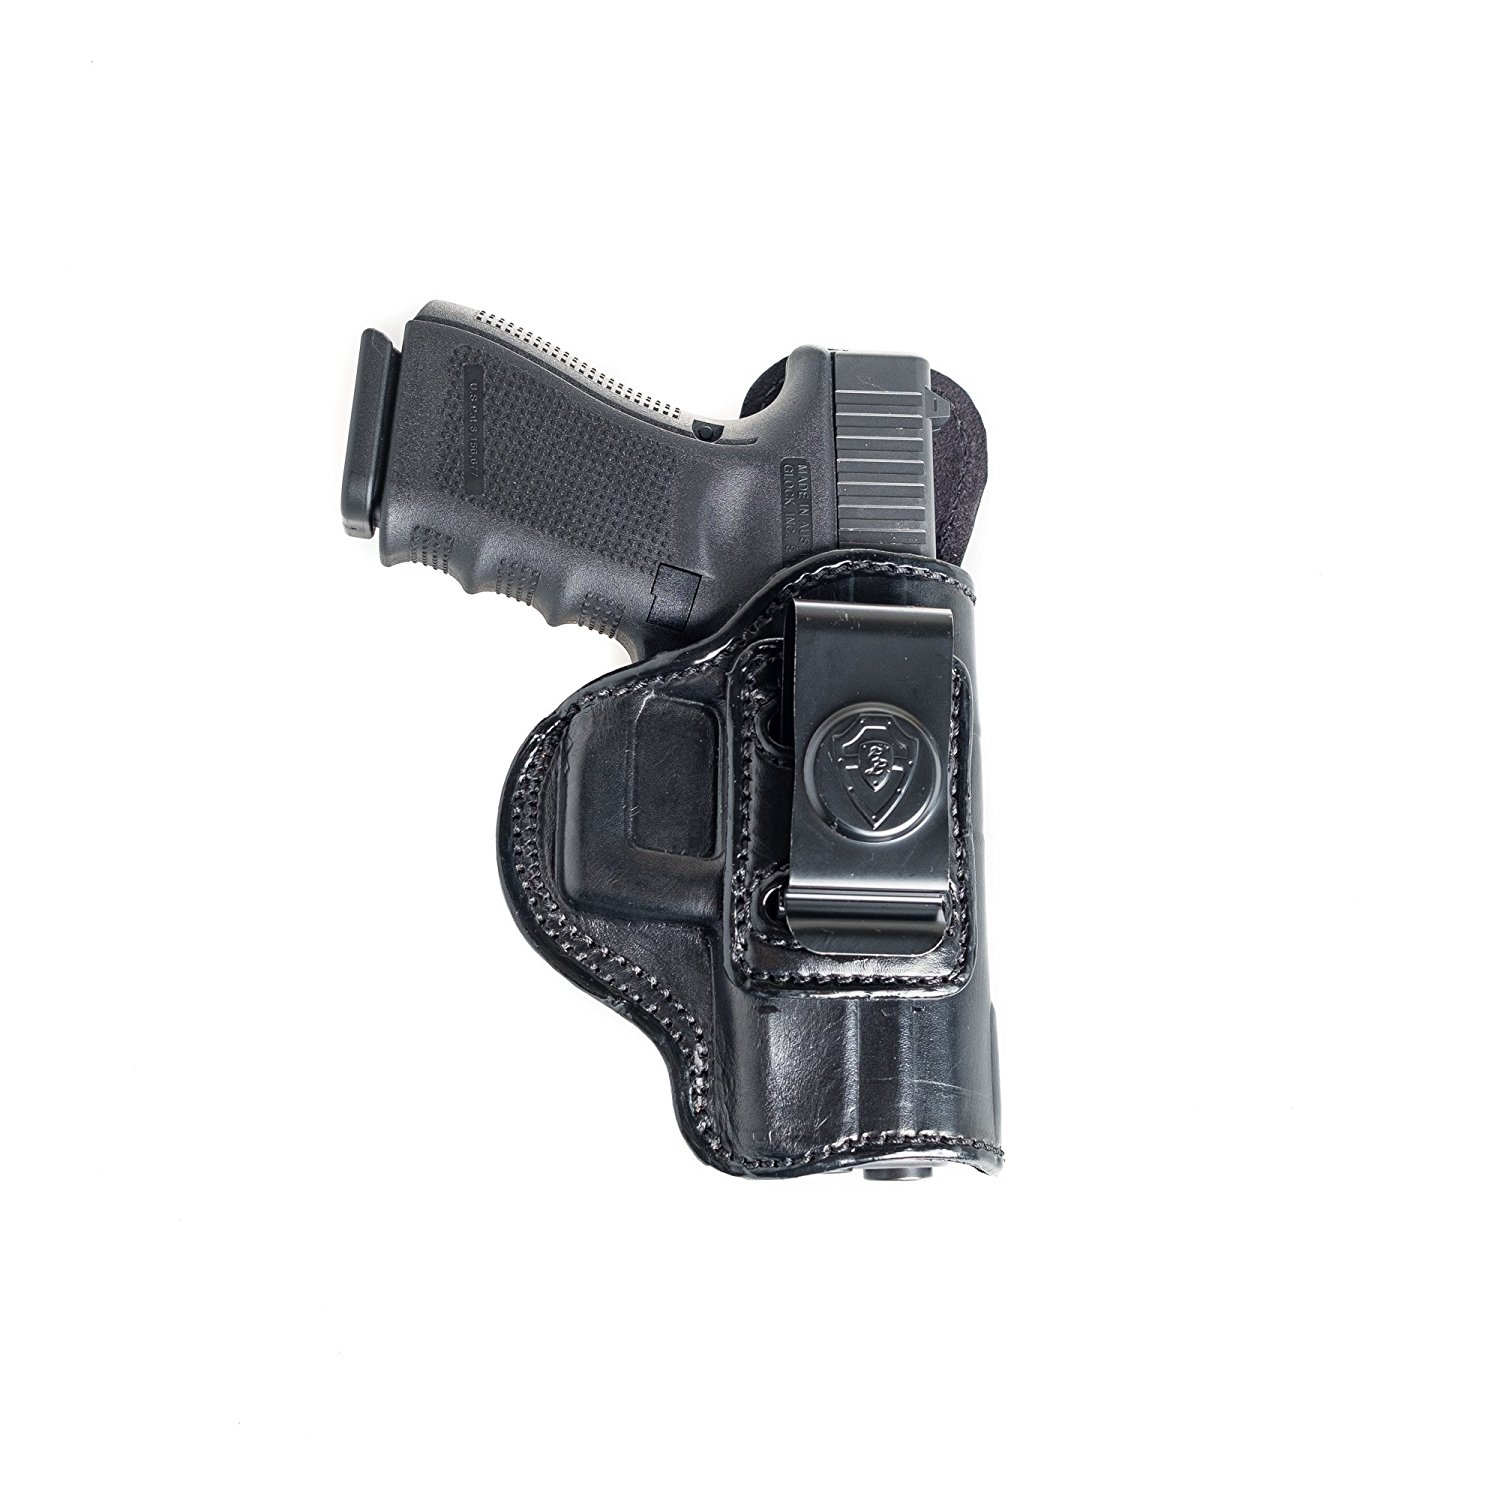 Inside The Waistband Leather Holster For CZ 75C, P-09, 75, 85, SP 01, 97, 97B. IWB Holster with Clip Conceal Carry.